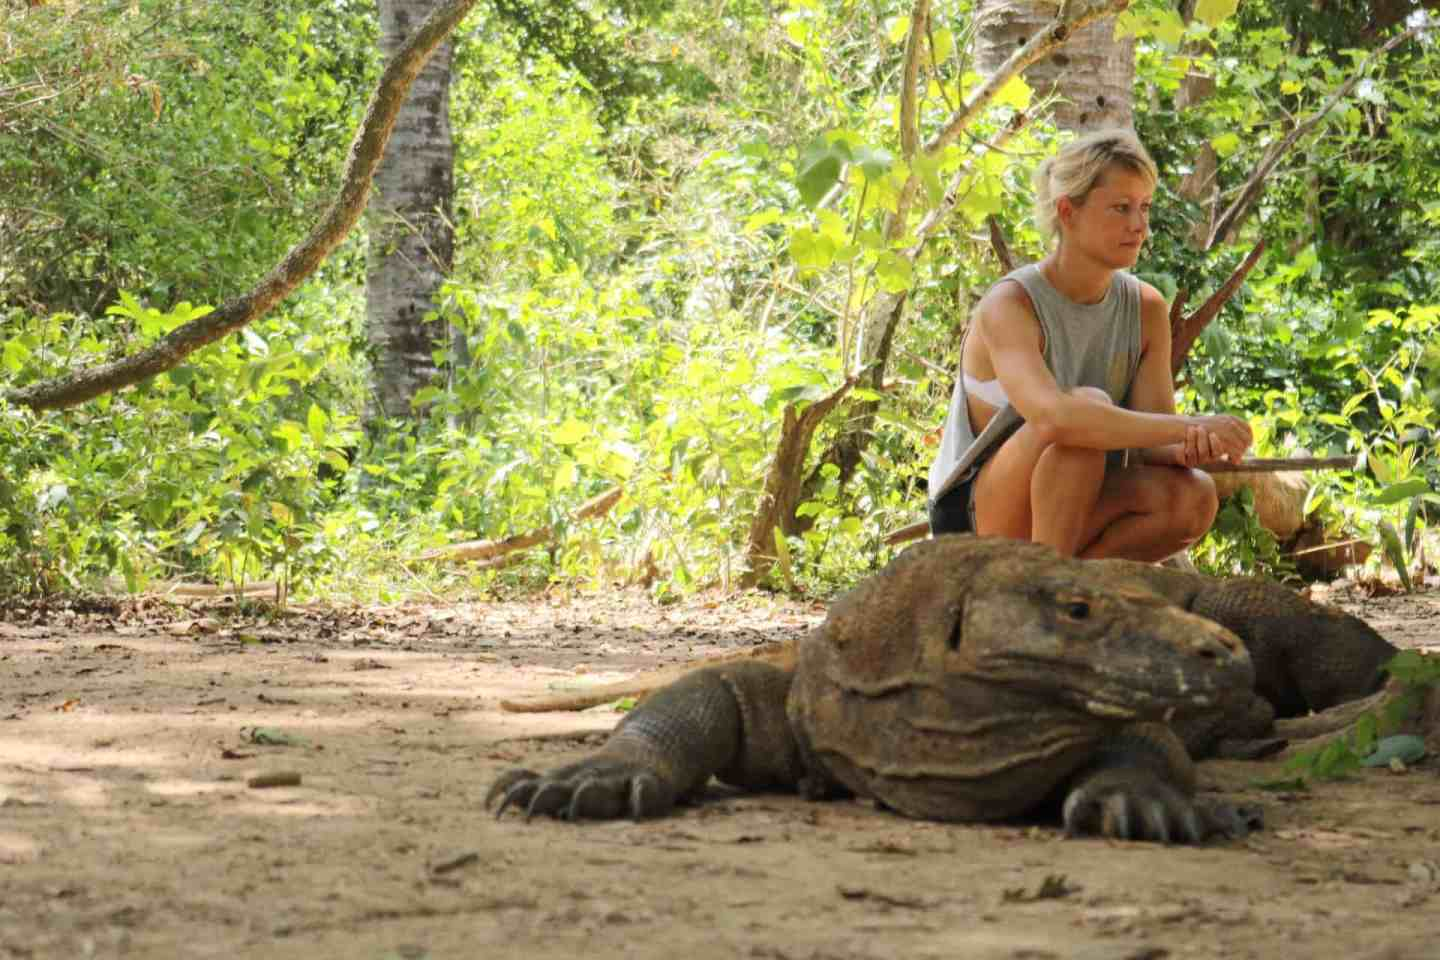 Komodo dragon laying on the ground and a girl kneeling behind it